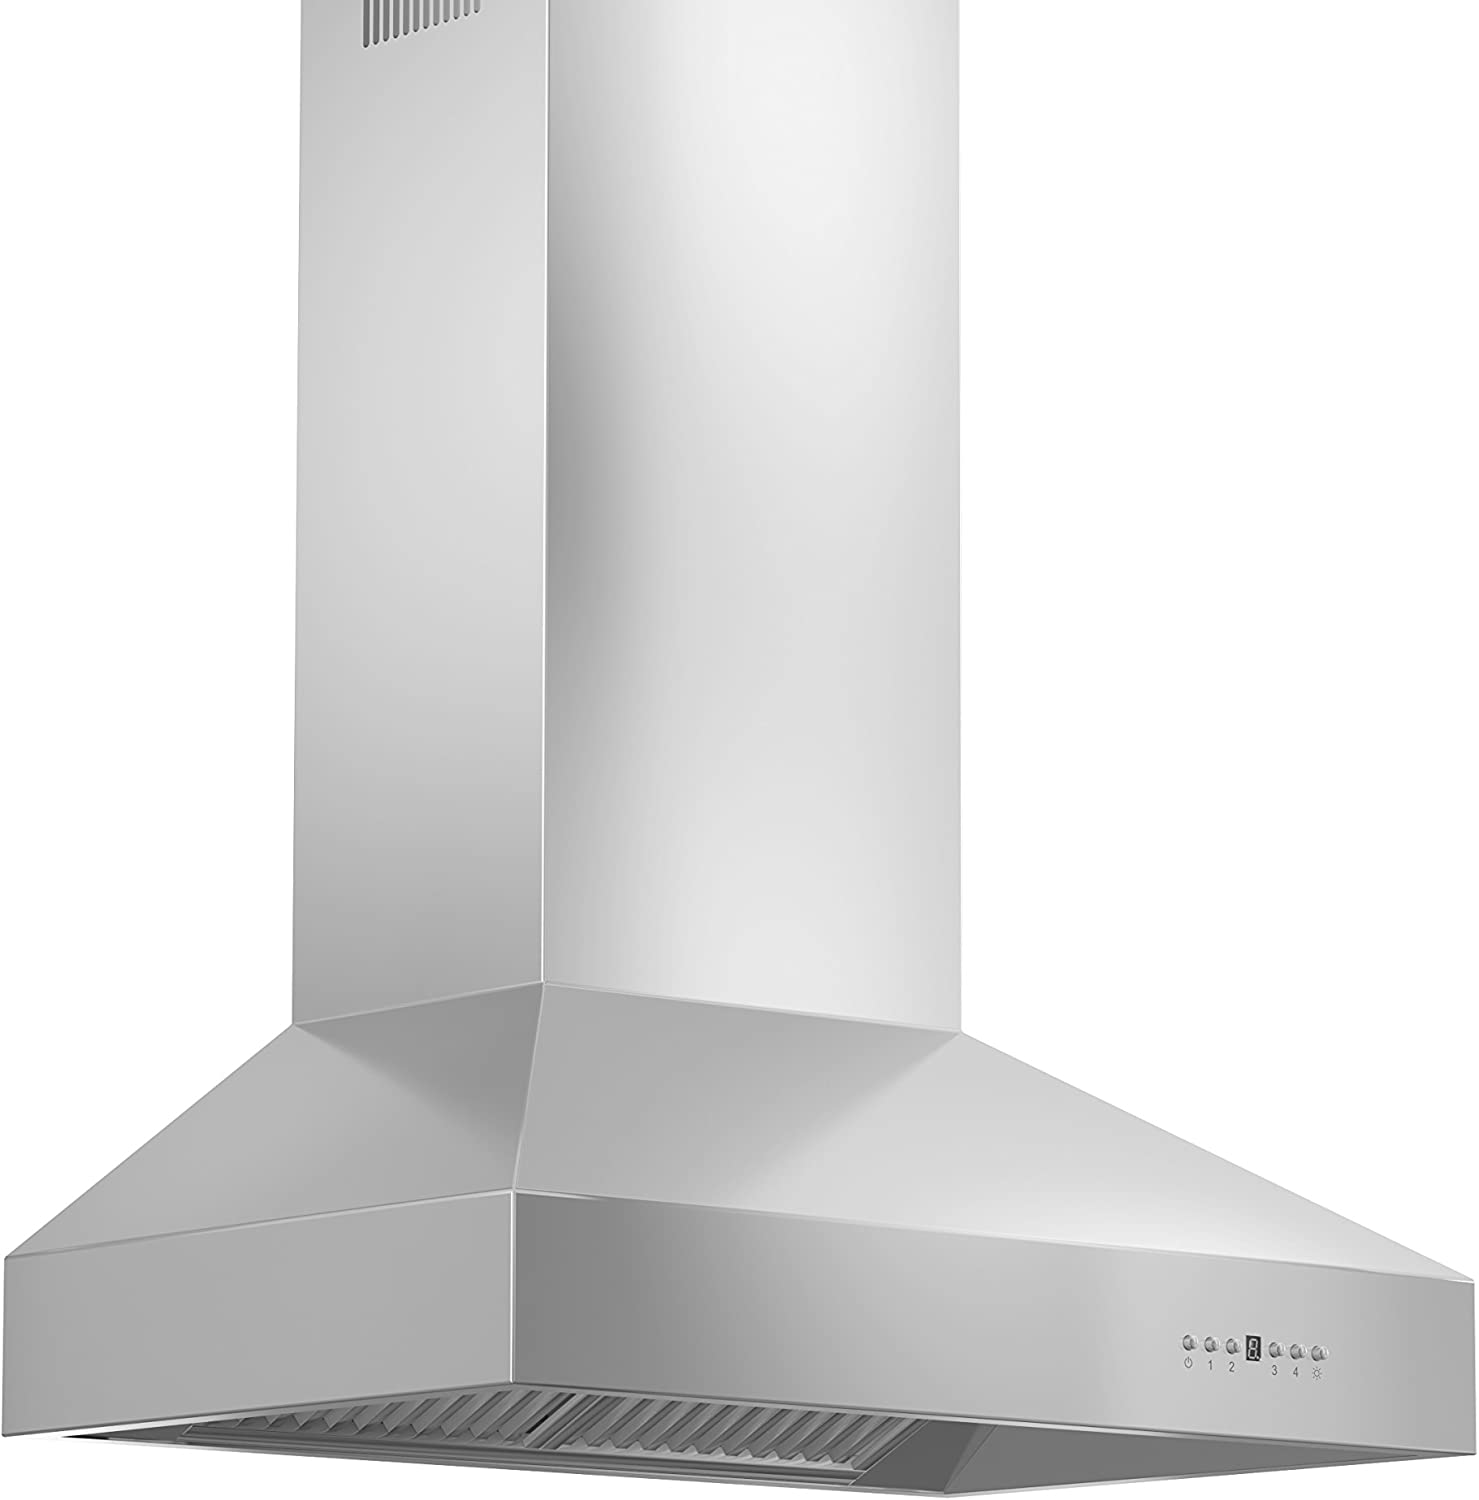 ZLINE 42 in. Remote Blower Wall Mount Range Hood in Stainless Steel (697-RD-42)